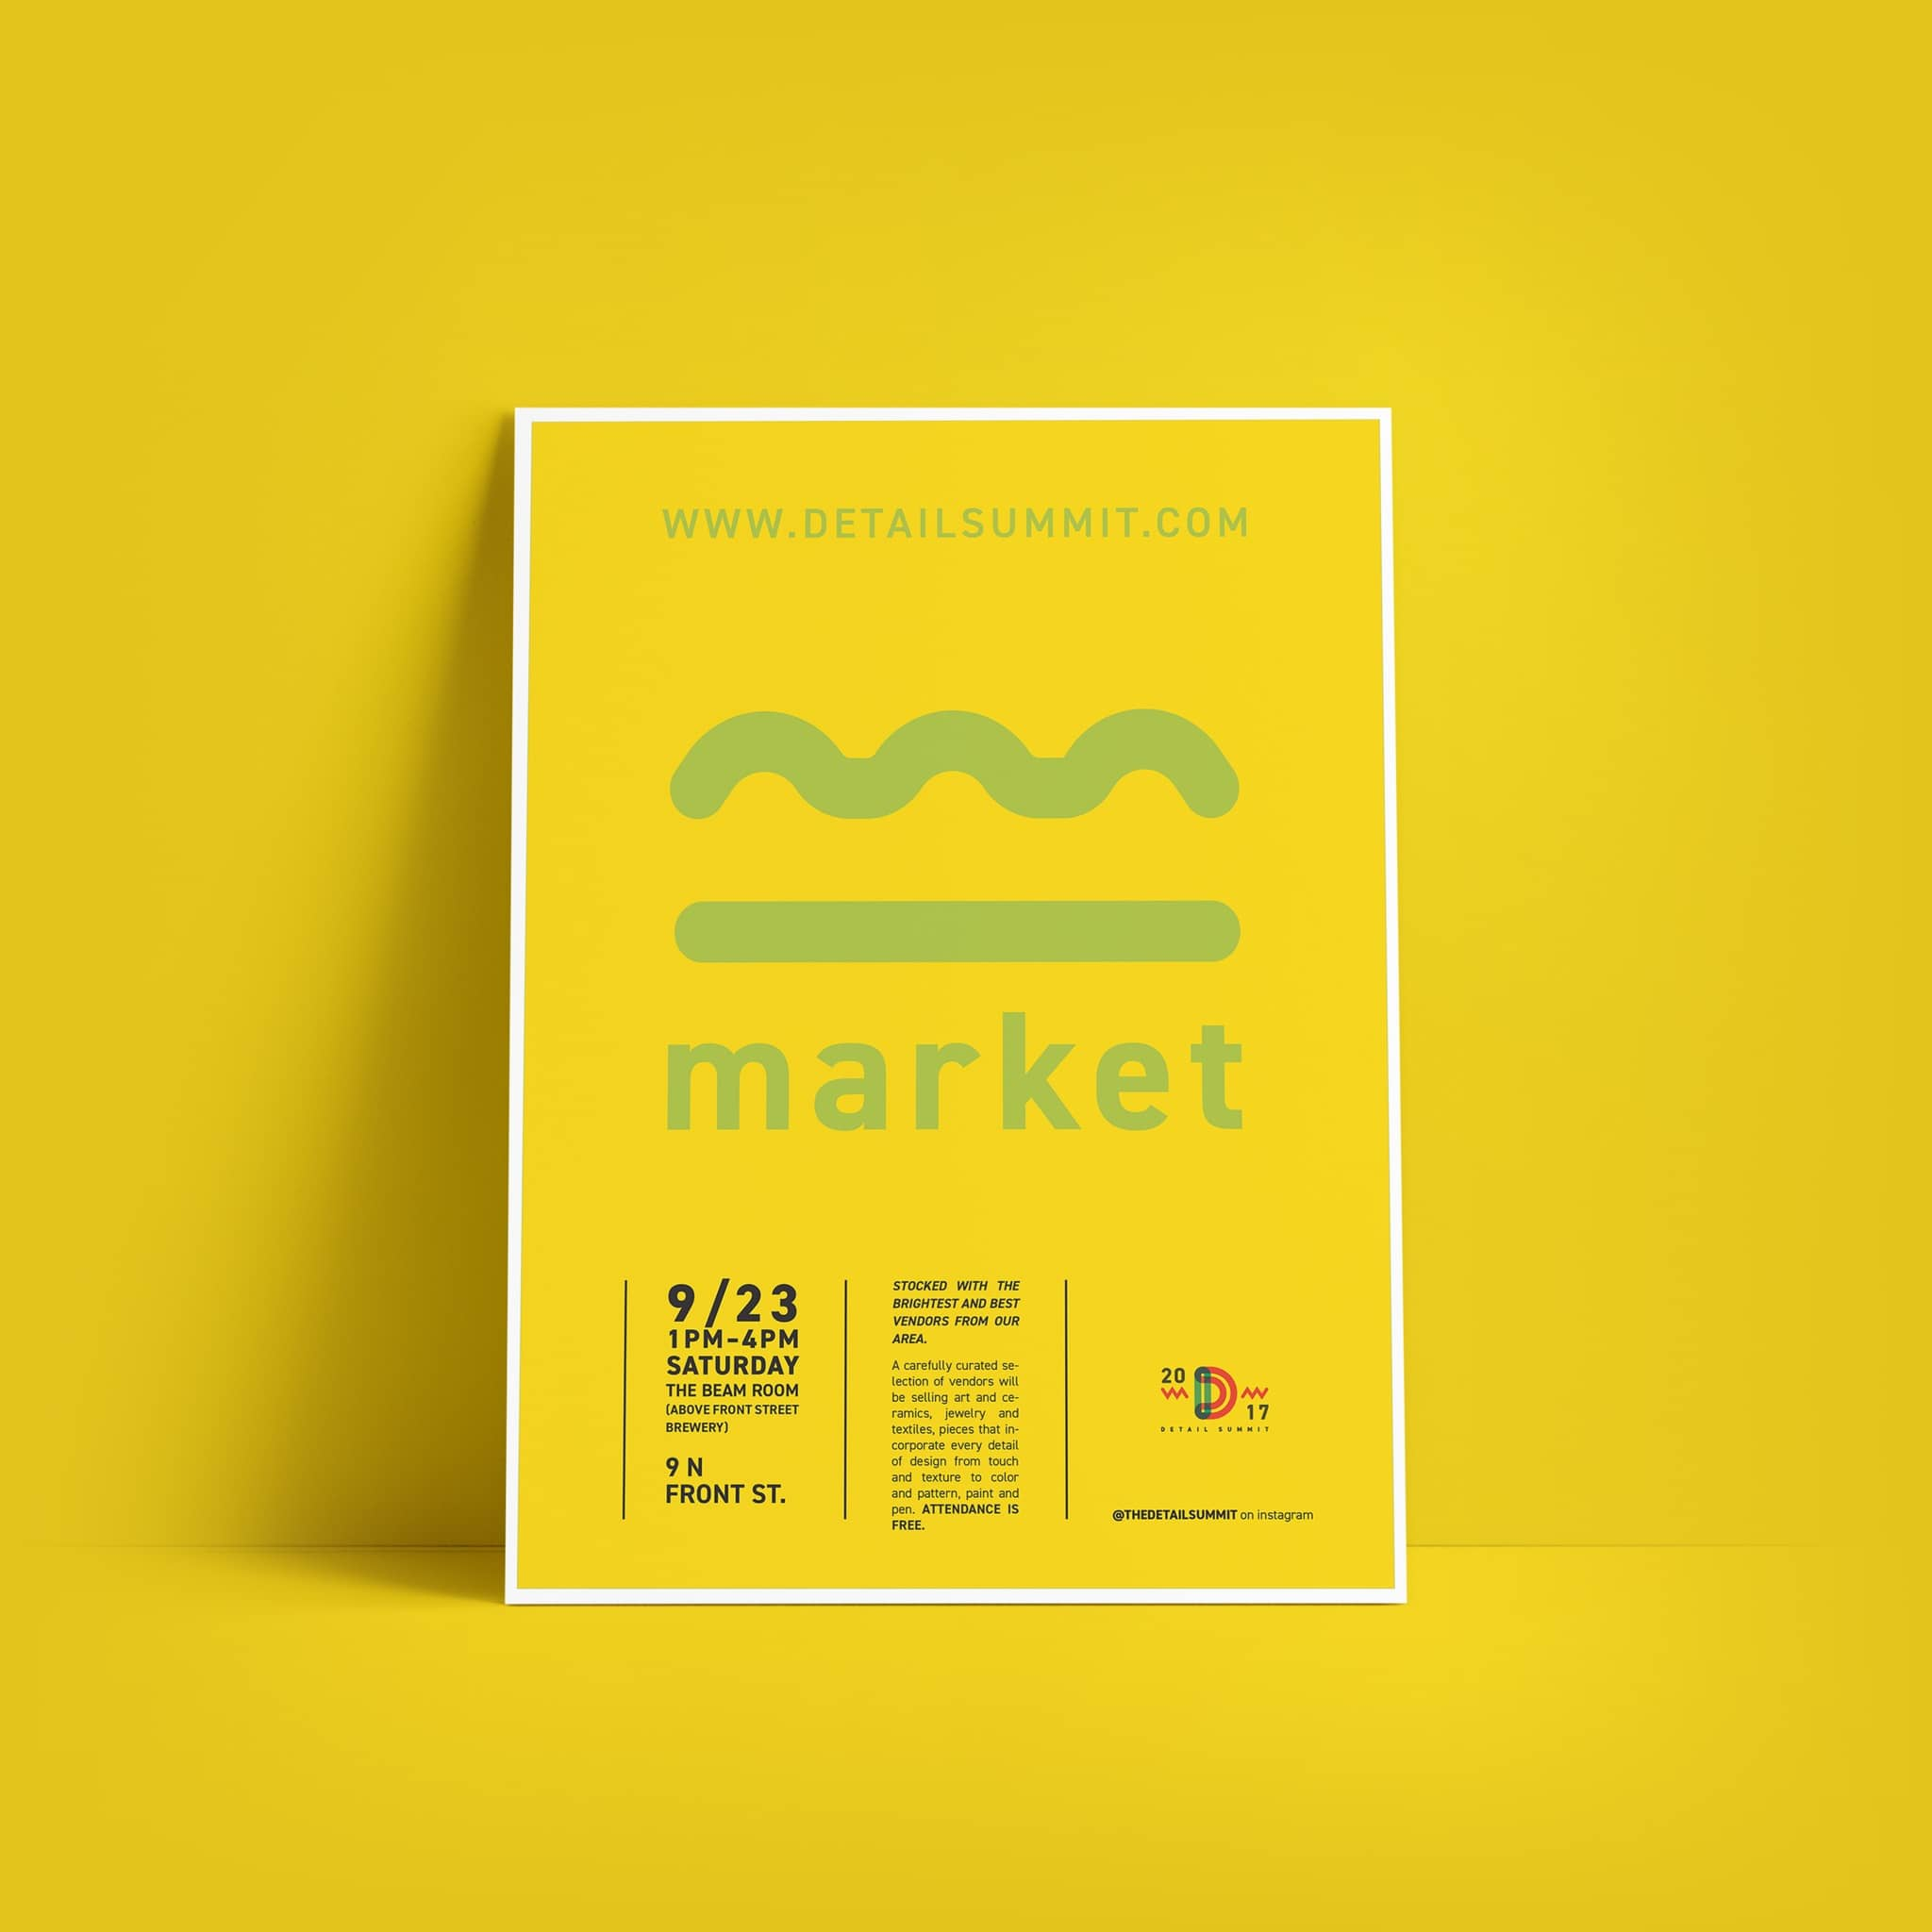 Detail Summit posters - graphic design by Brand Engine